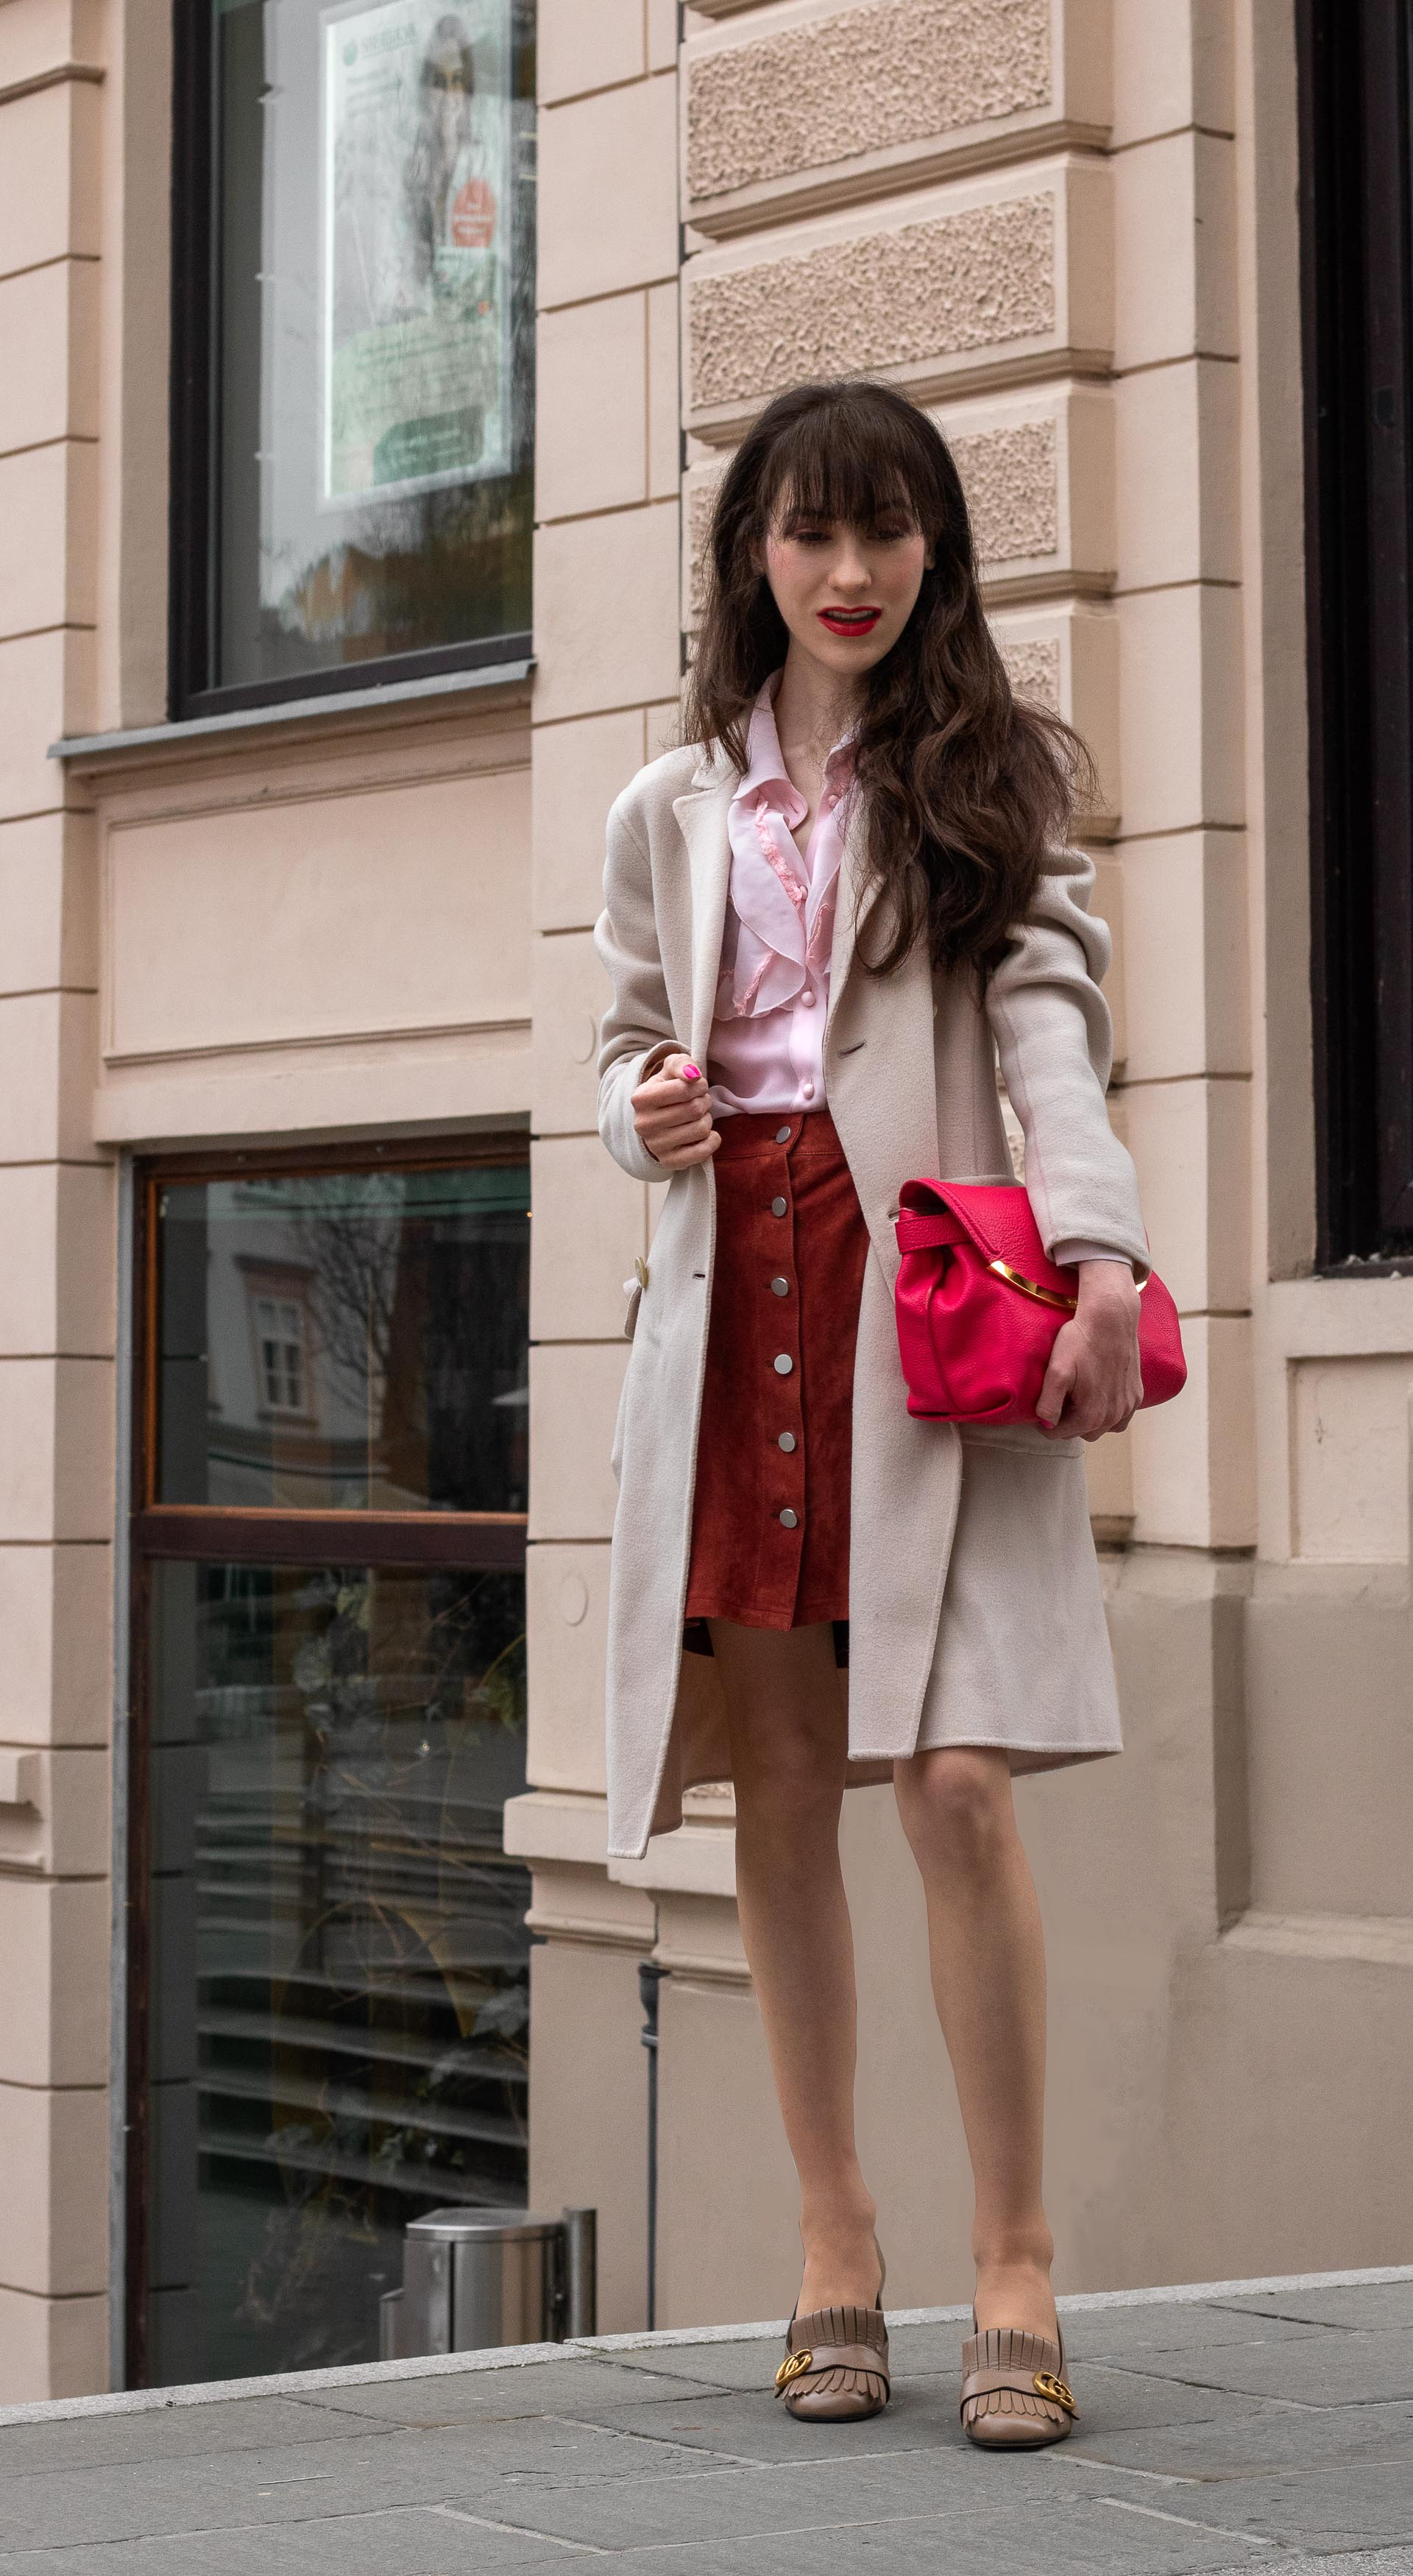 Fashion blogger Veronika Lipar of Brunette from Wall Street wearing Weekend Max Mara double breasted coat Red Valentino pink blouse brown suede front button short skirt pink pouch bag Gucci heeled loafers Sunday to Monday